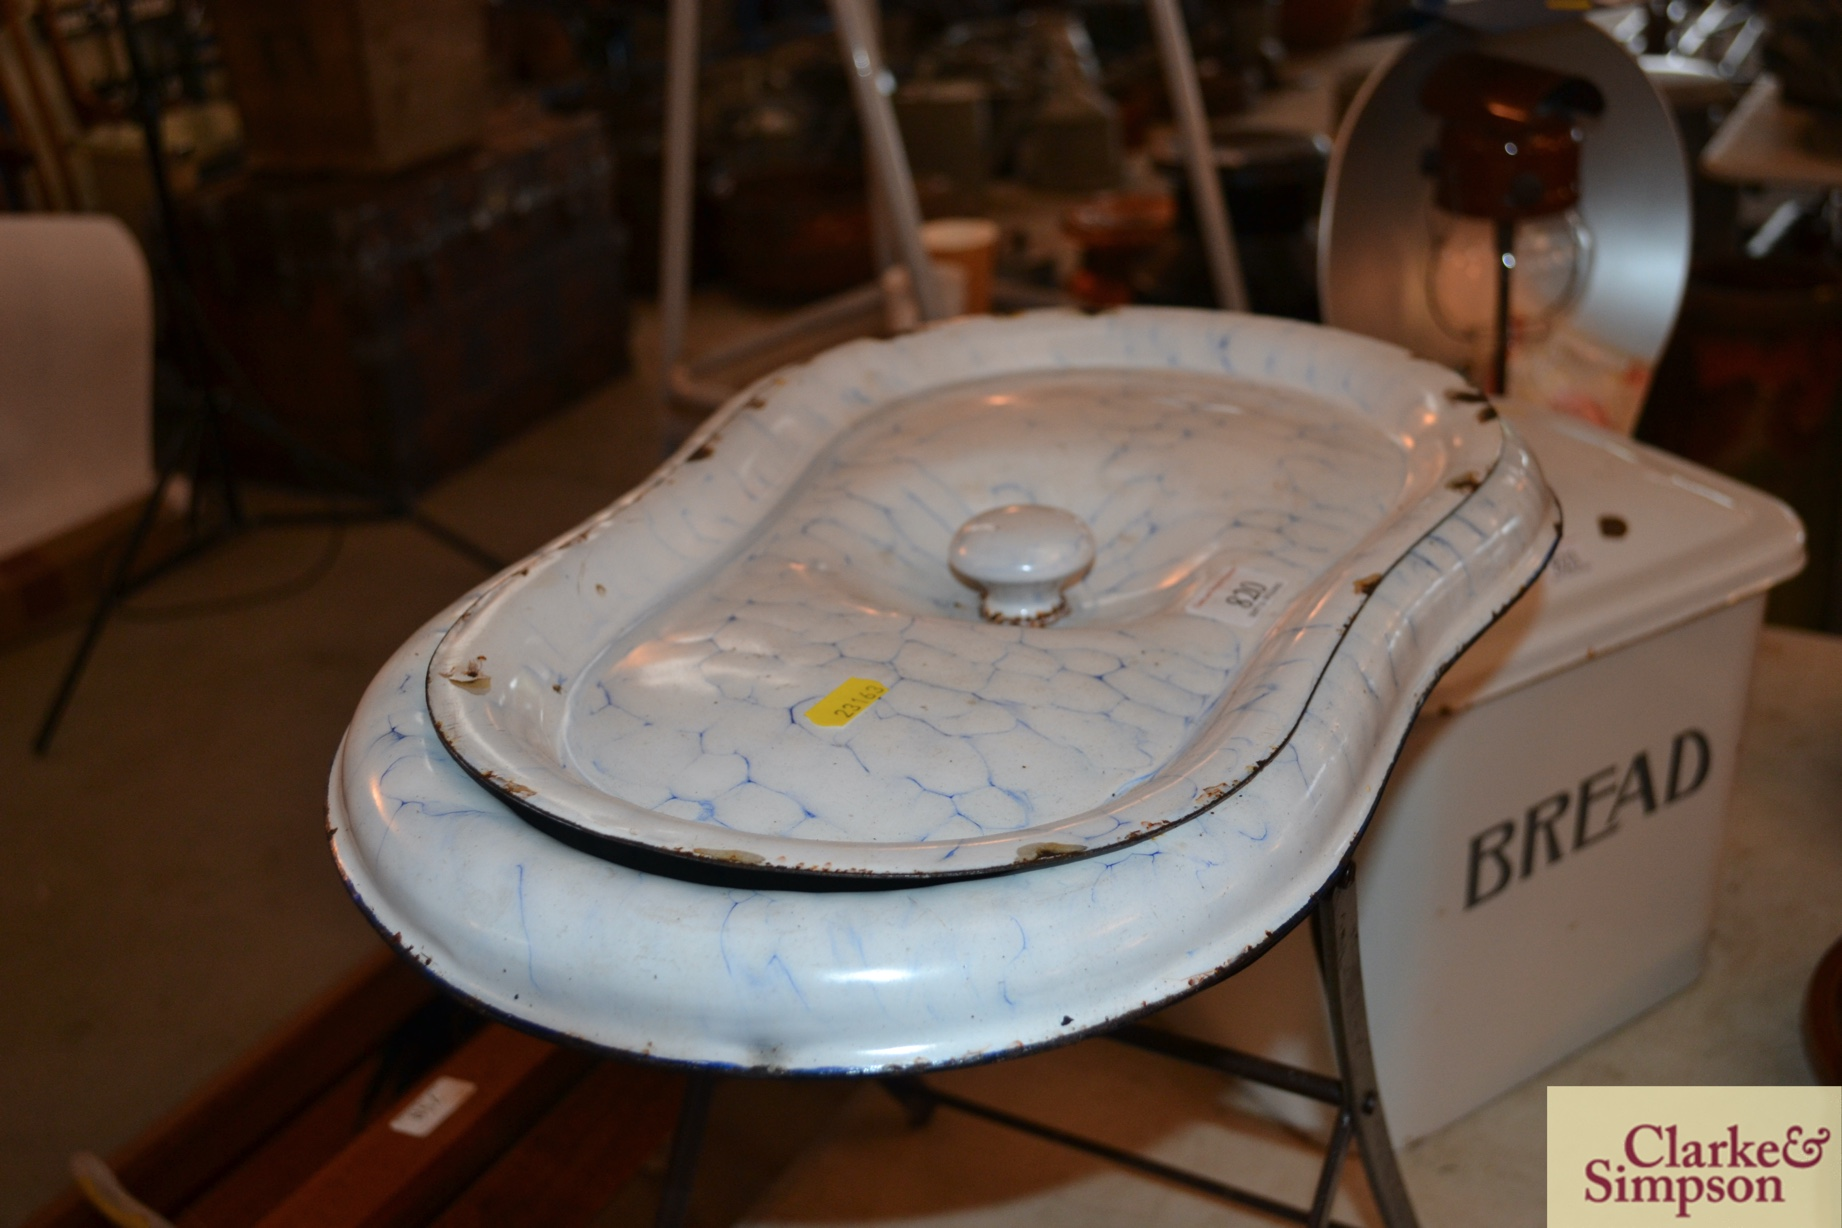 An enamel baby bath complete with metal foldaway s - Image 4 of 4